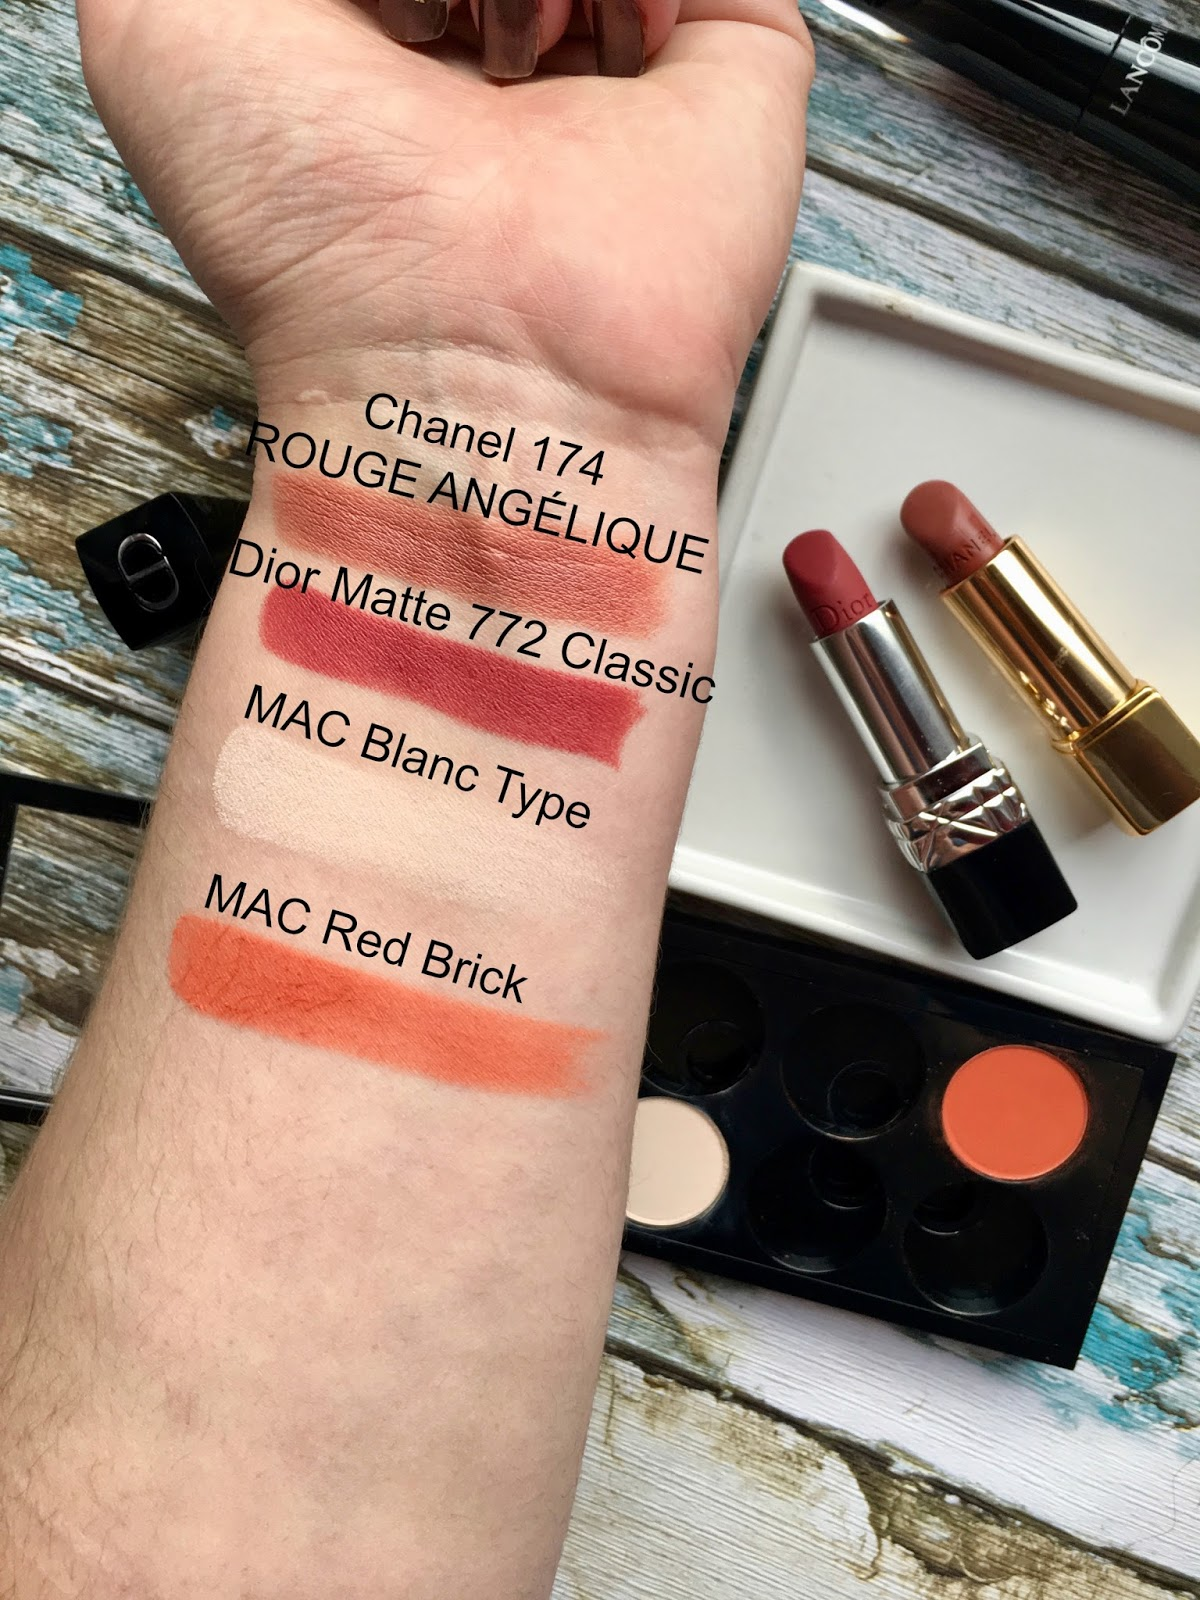 Chanel 174 Rouge Angelique Dior Matte 772 Classic Swatches